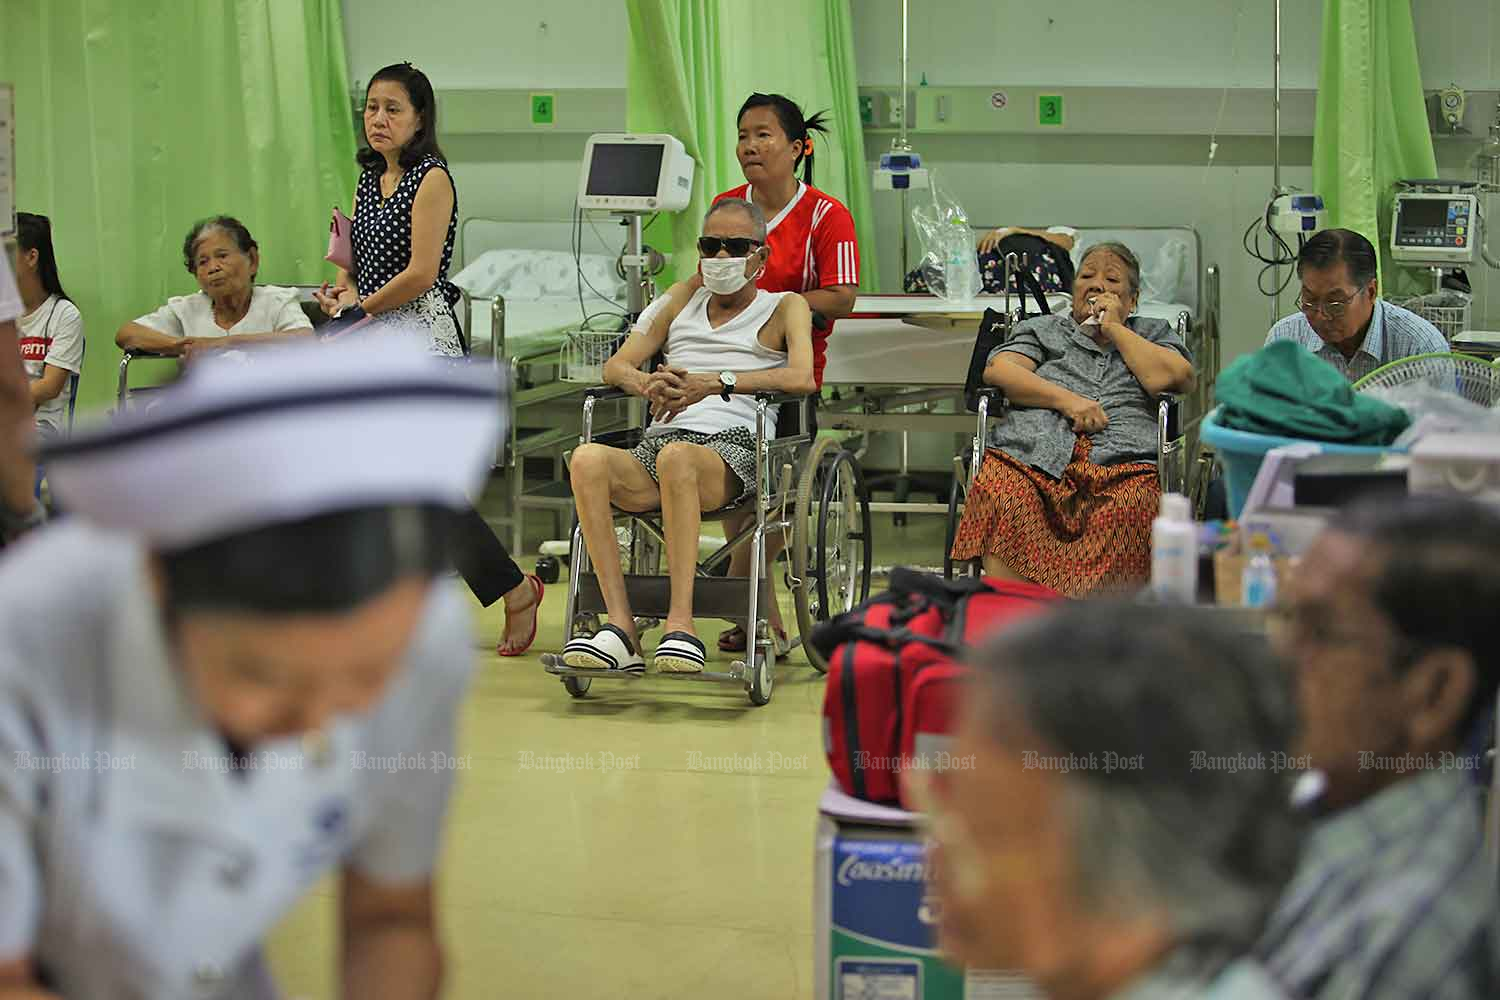 Agencies concerned over number of young people entering the workforce who will have to support the elderly. (Bangkok Post file photo)